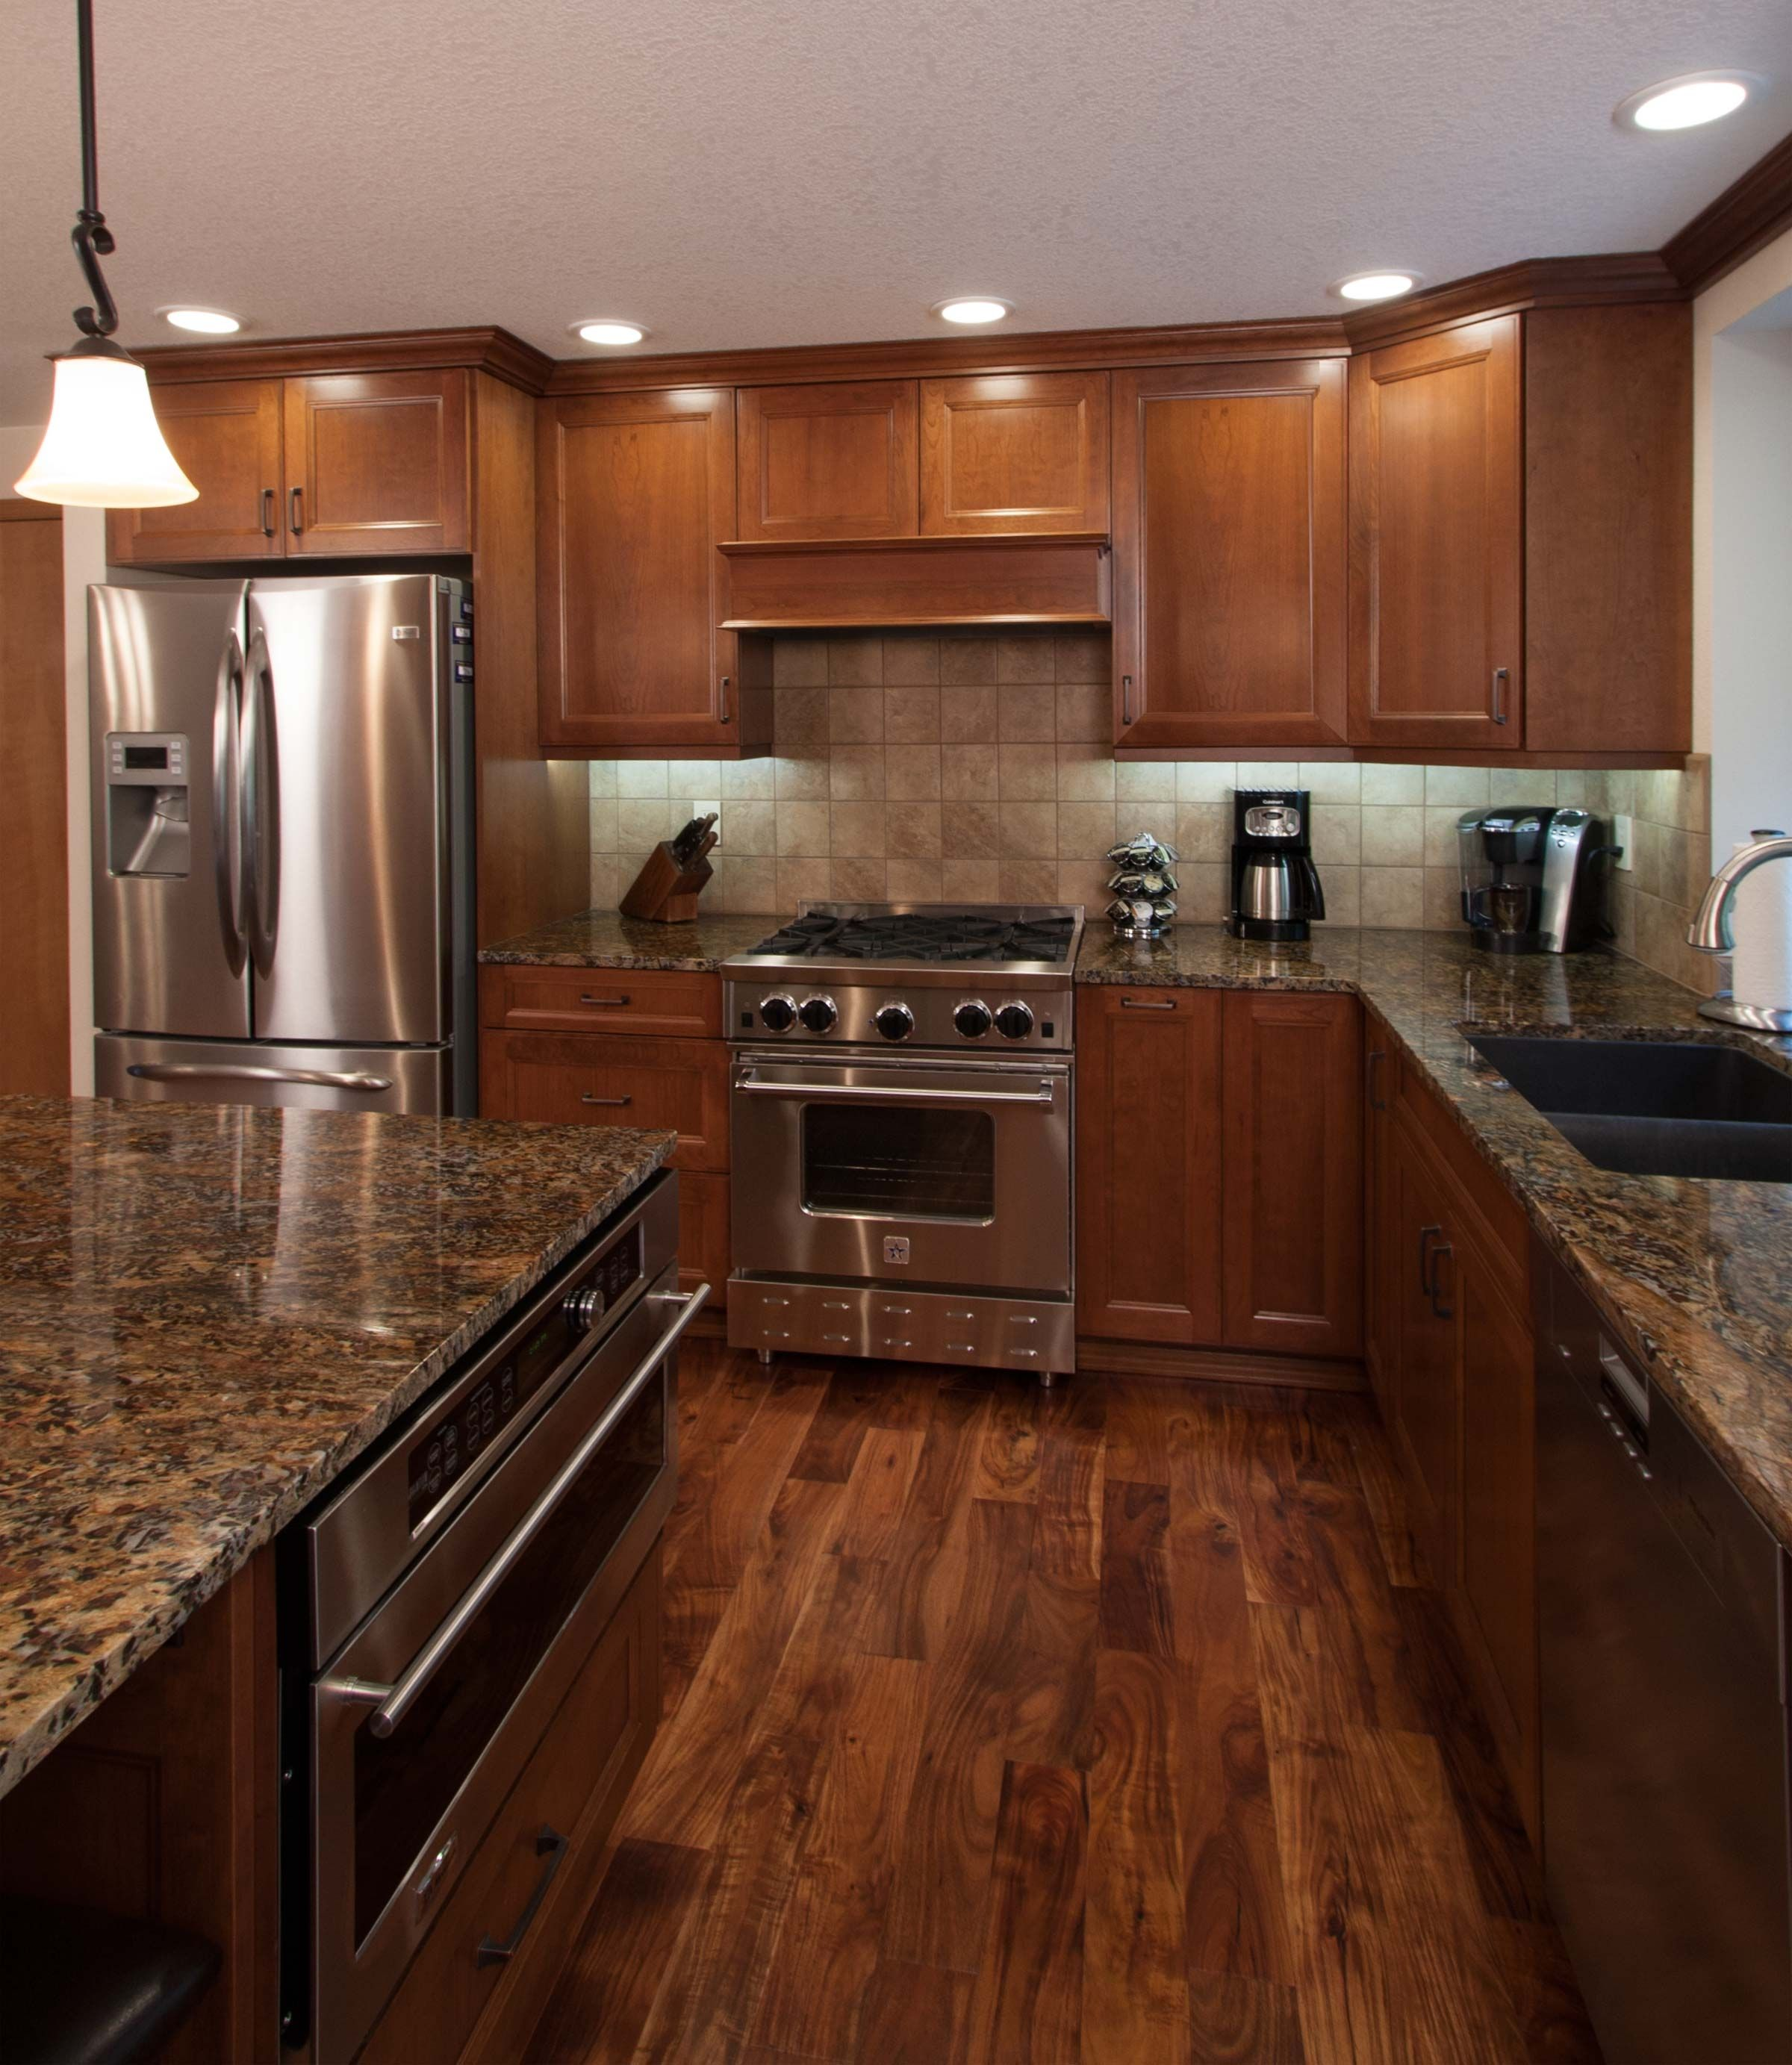 Kitchen Floor Ideas With Wood Cabinets Appealing Wood